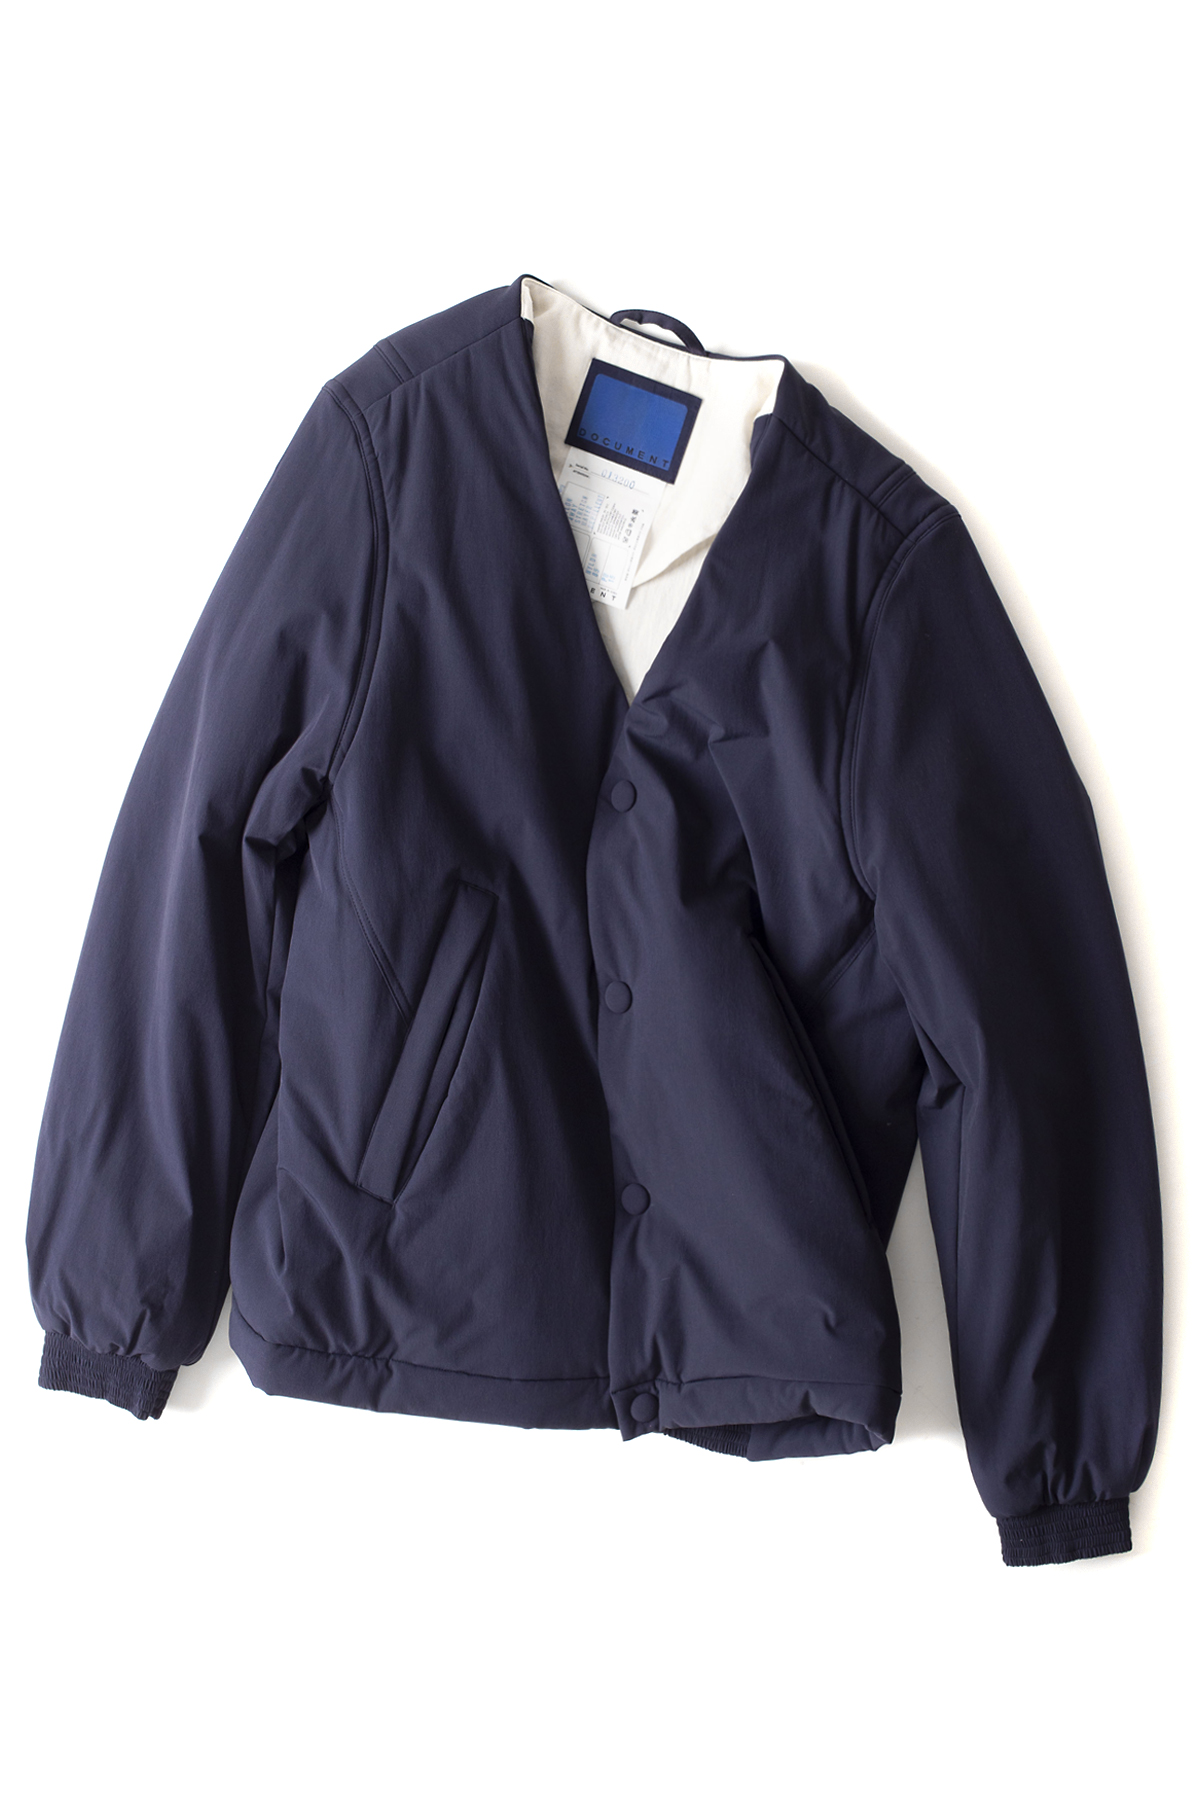 Document : Nylon Padded Jacket (Navy)